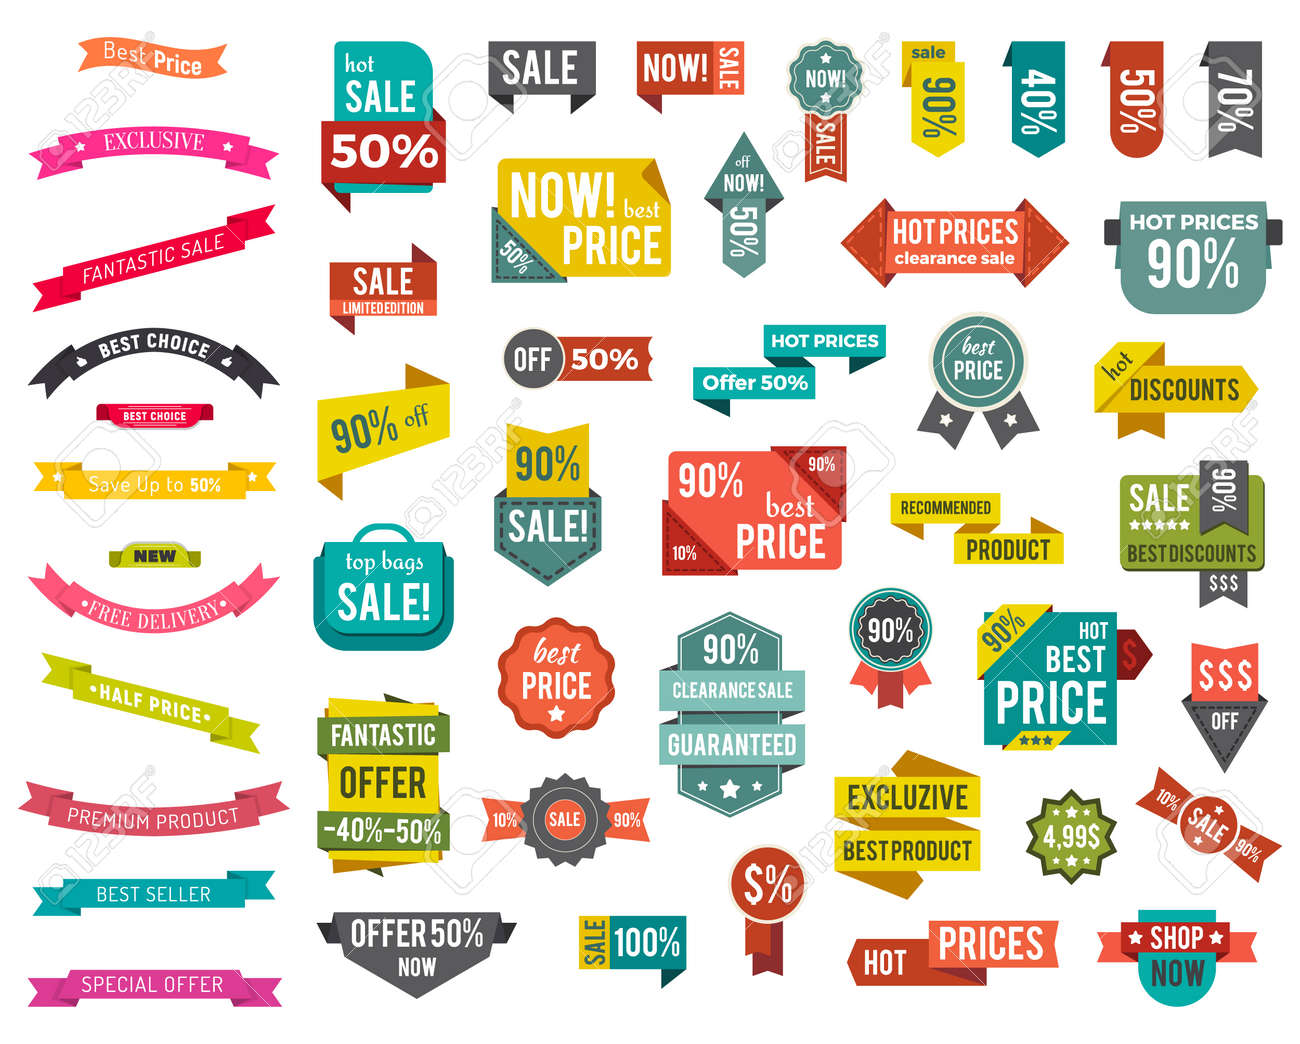 Set of colorful isolated labels with promotion caption. Big sale with best discounts and offers. Hot prices on clearance. Collection of advertising tags, icons. Vector illustration in flat style - 138827932